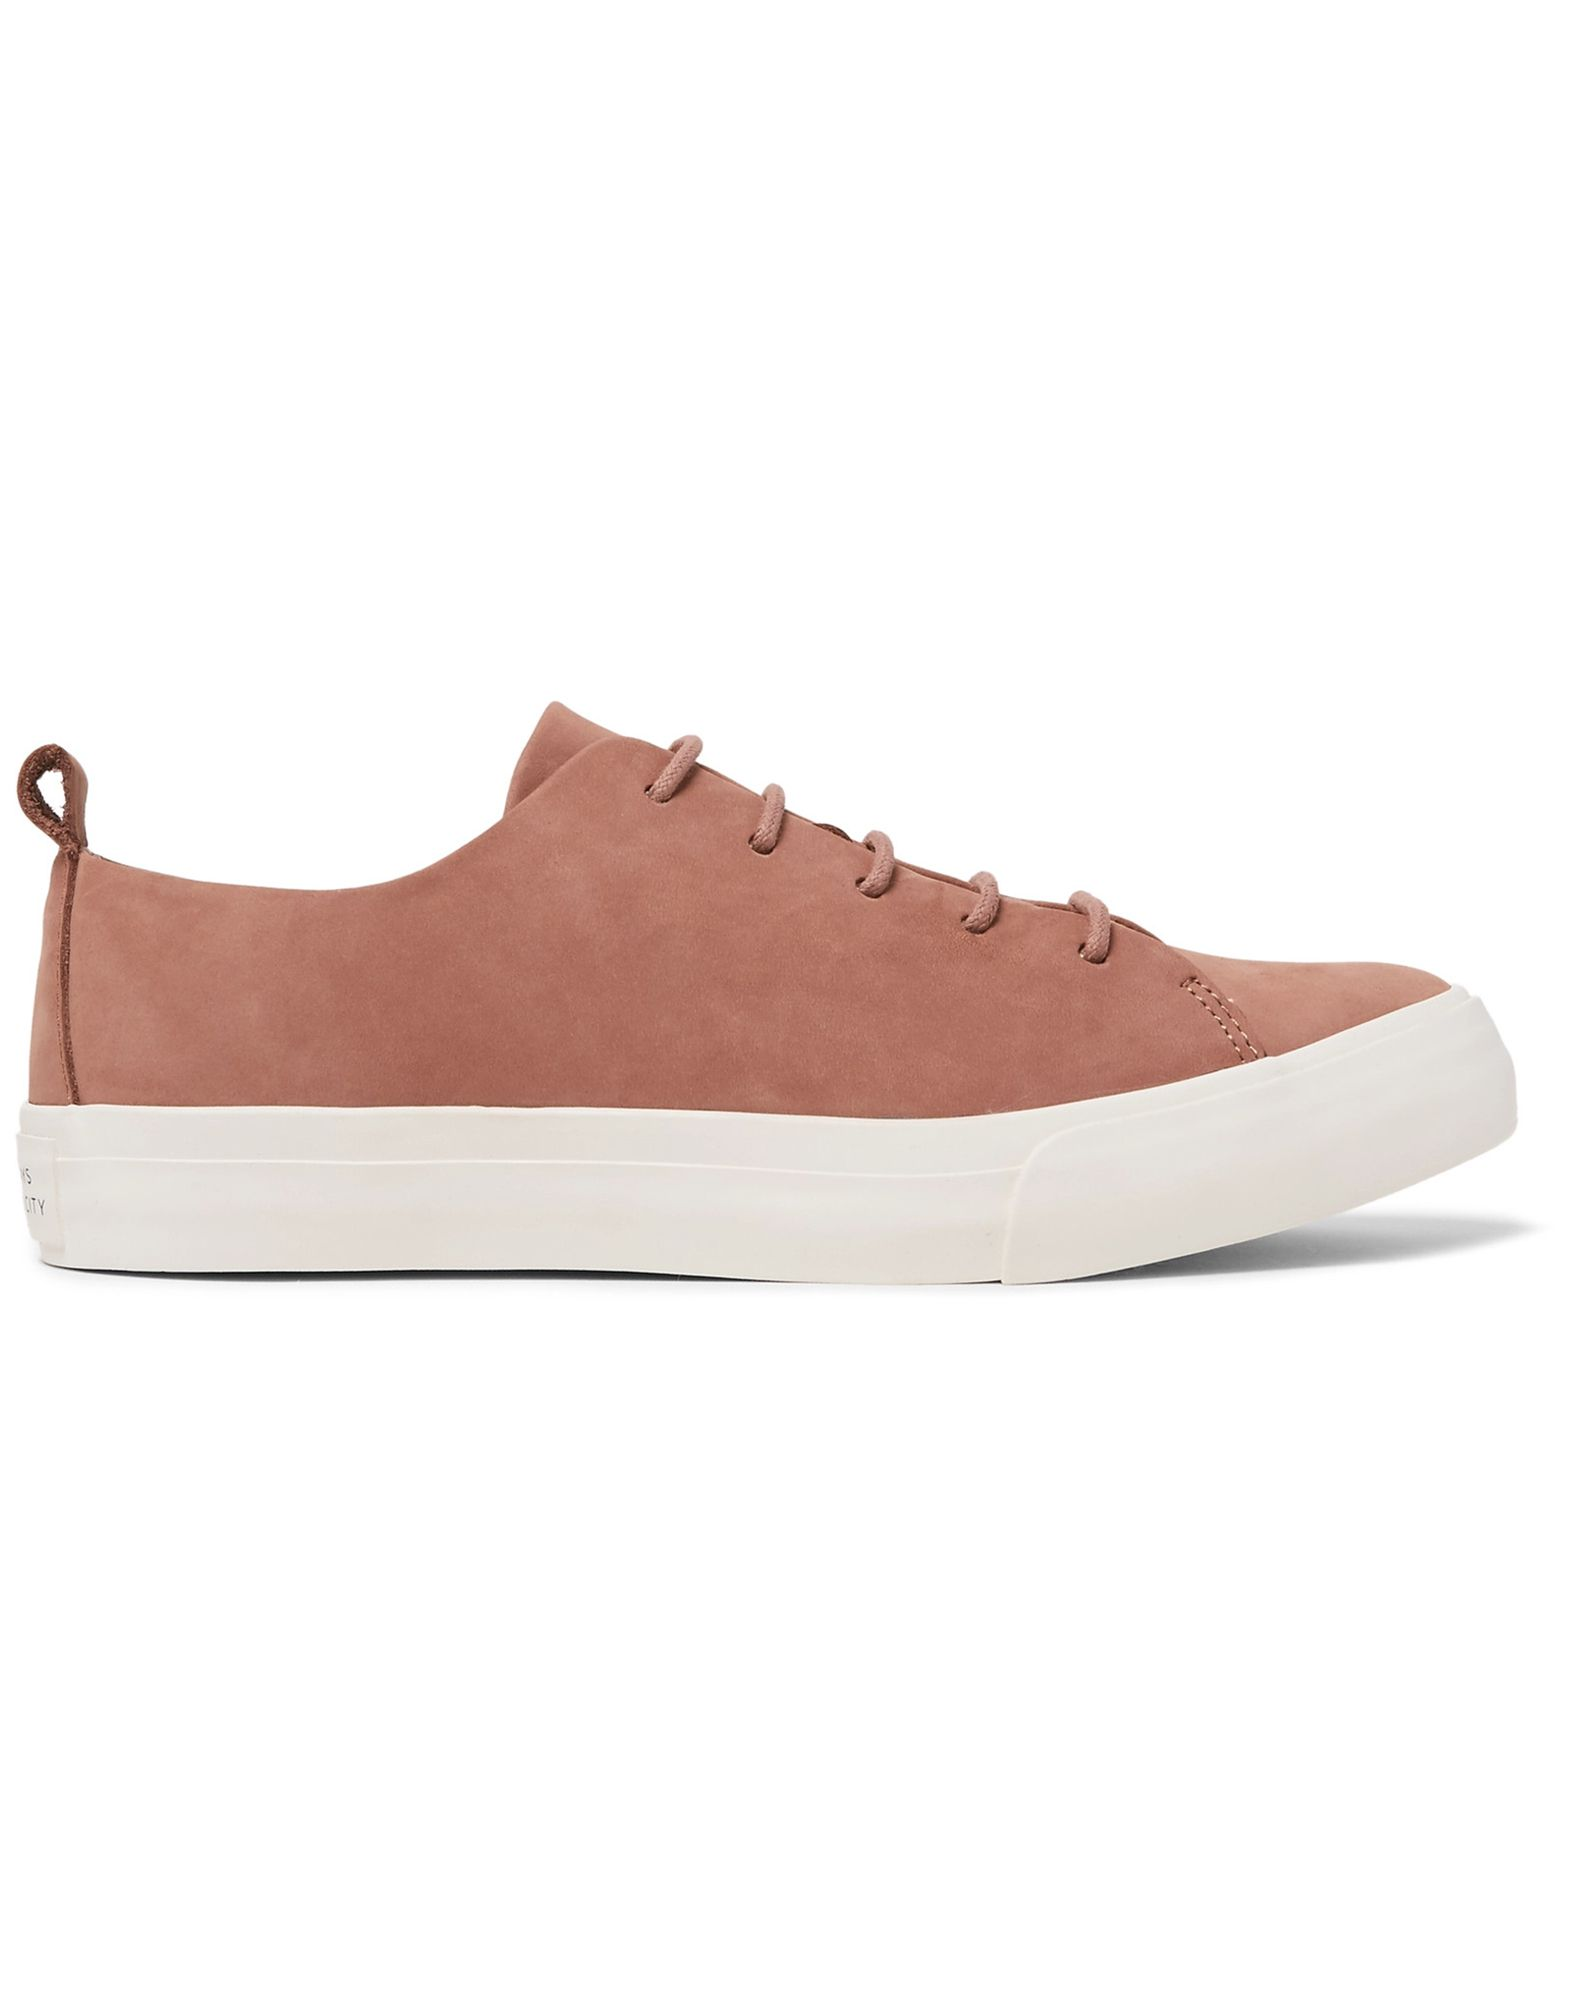 Sneakers Saturdays New York City Uomo - 11540273FN